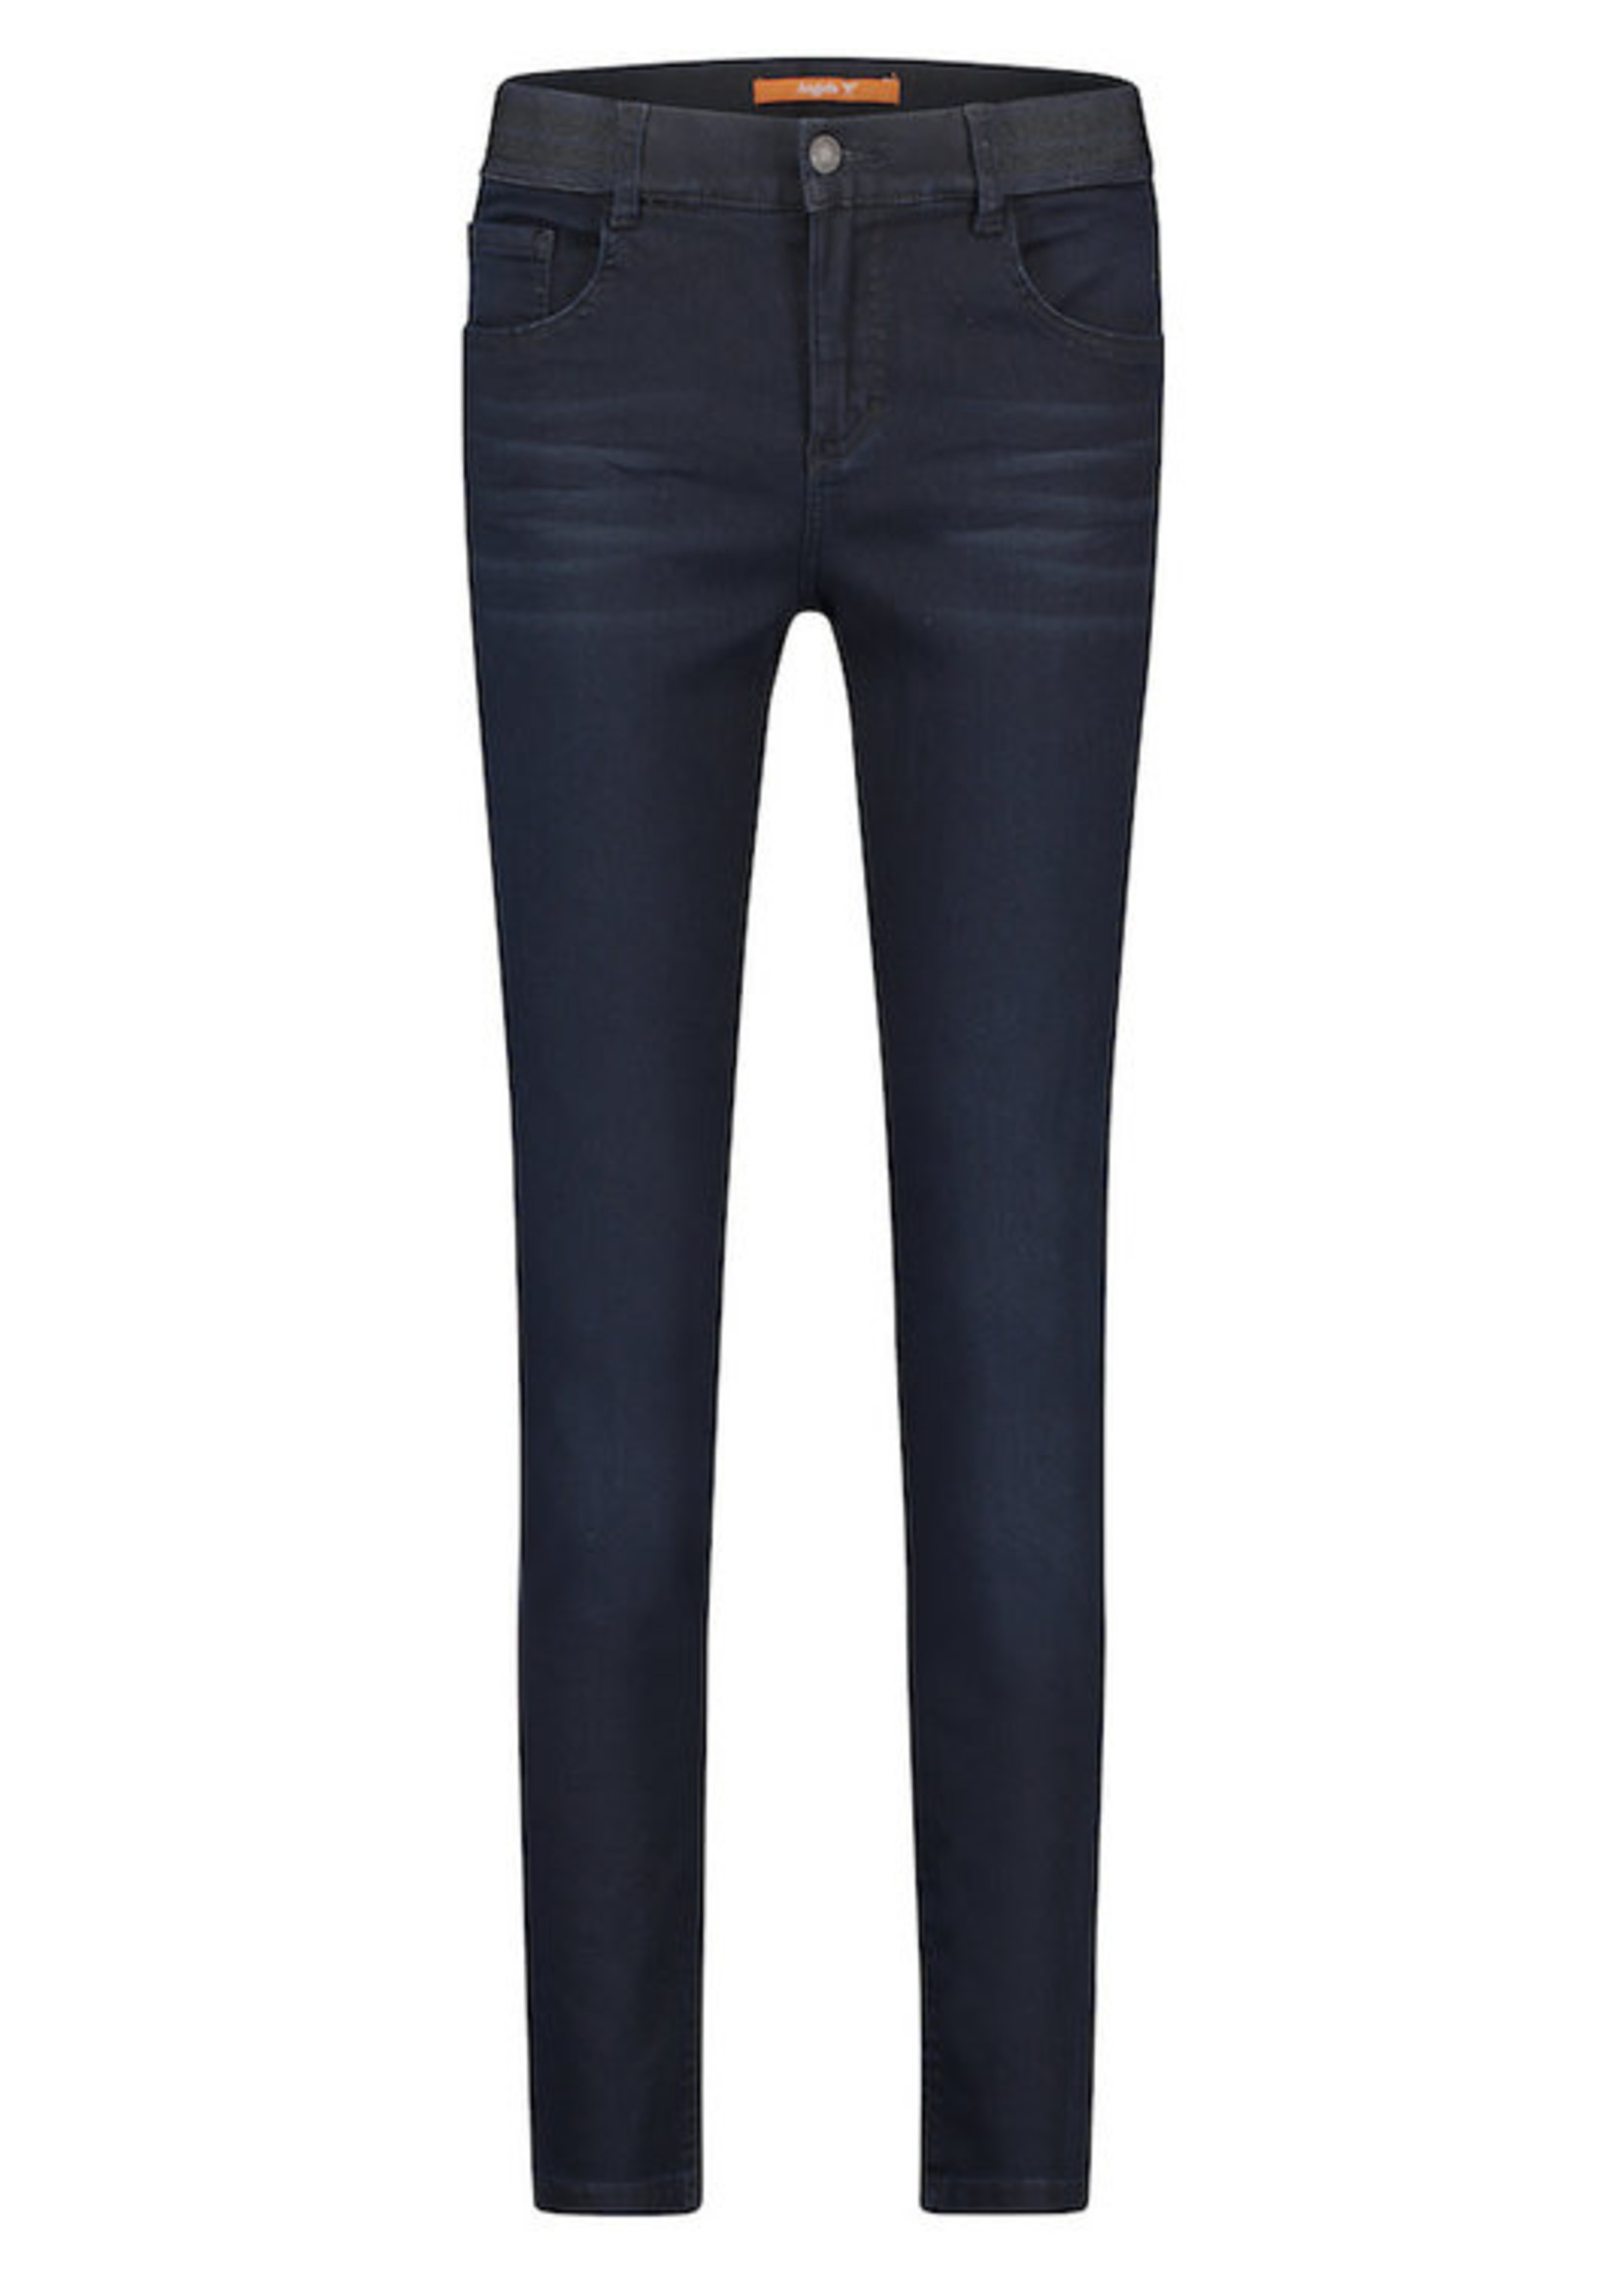 Angels Angels One Size Jeans Night Blue